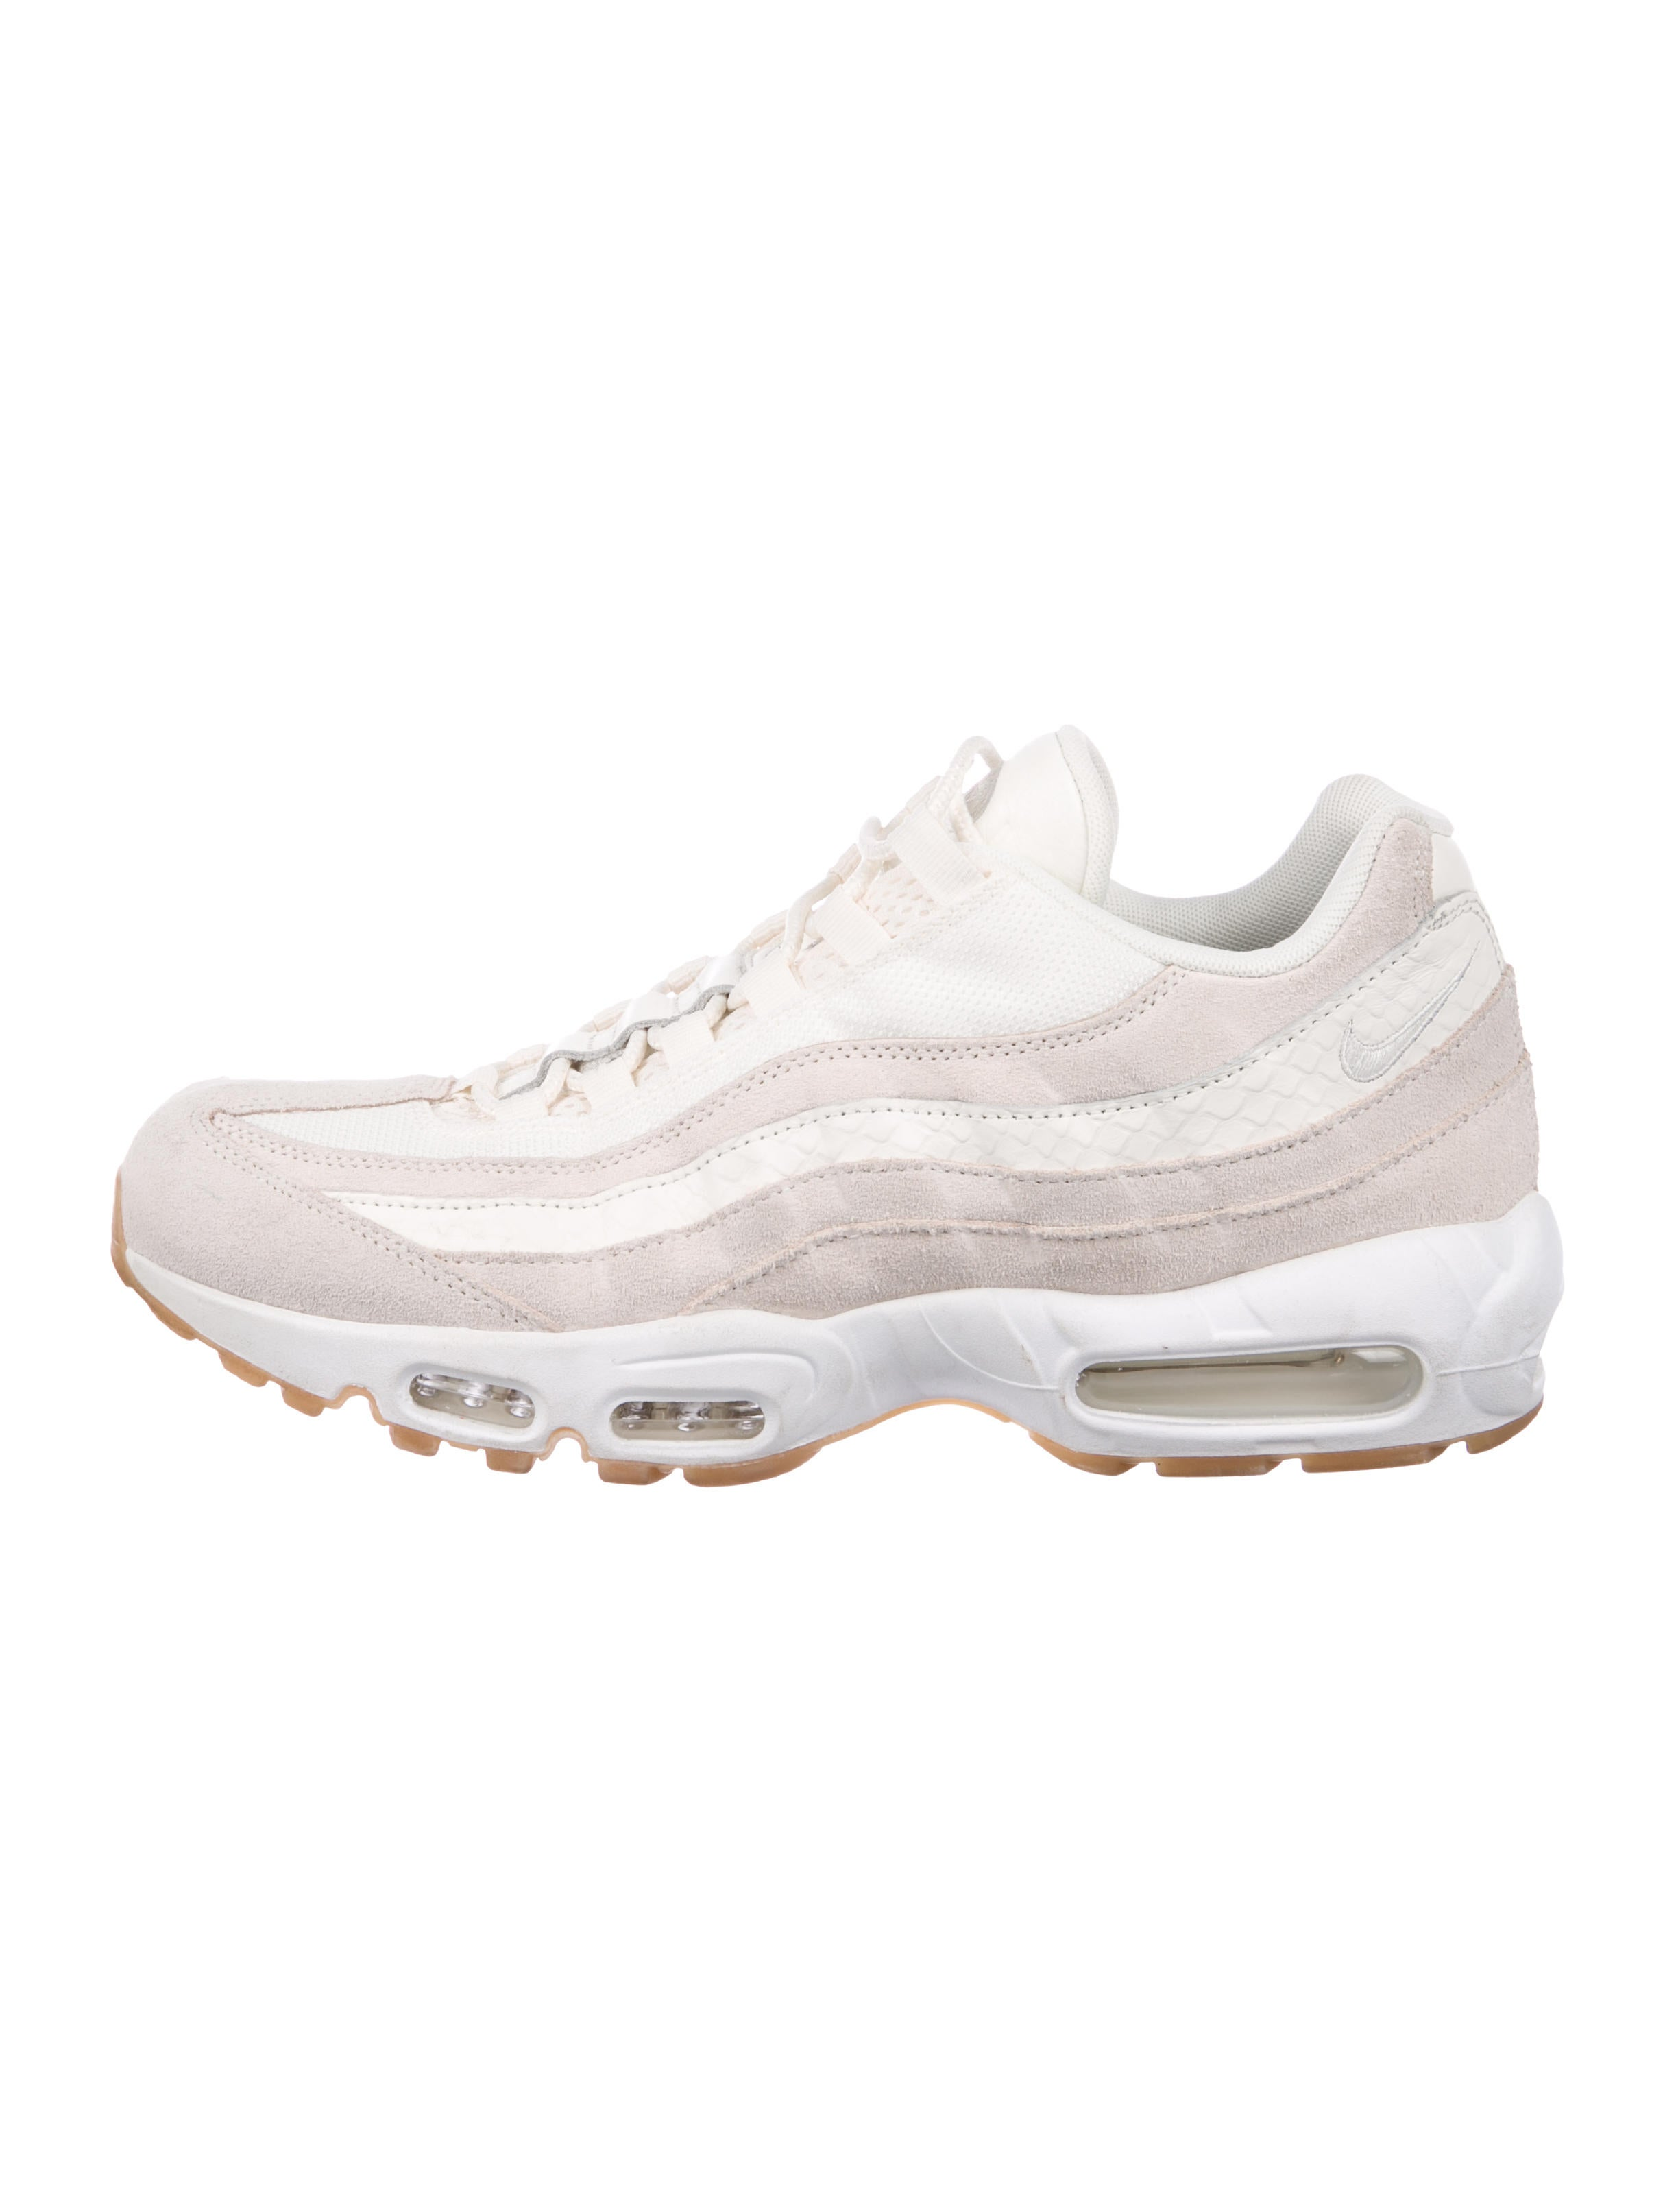 Nike Air Max 95 'Exotic Skins' Sneakers Shoes WU231455